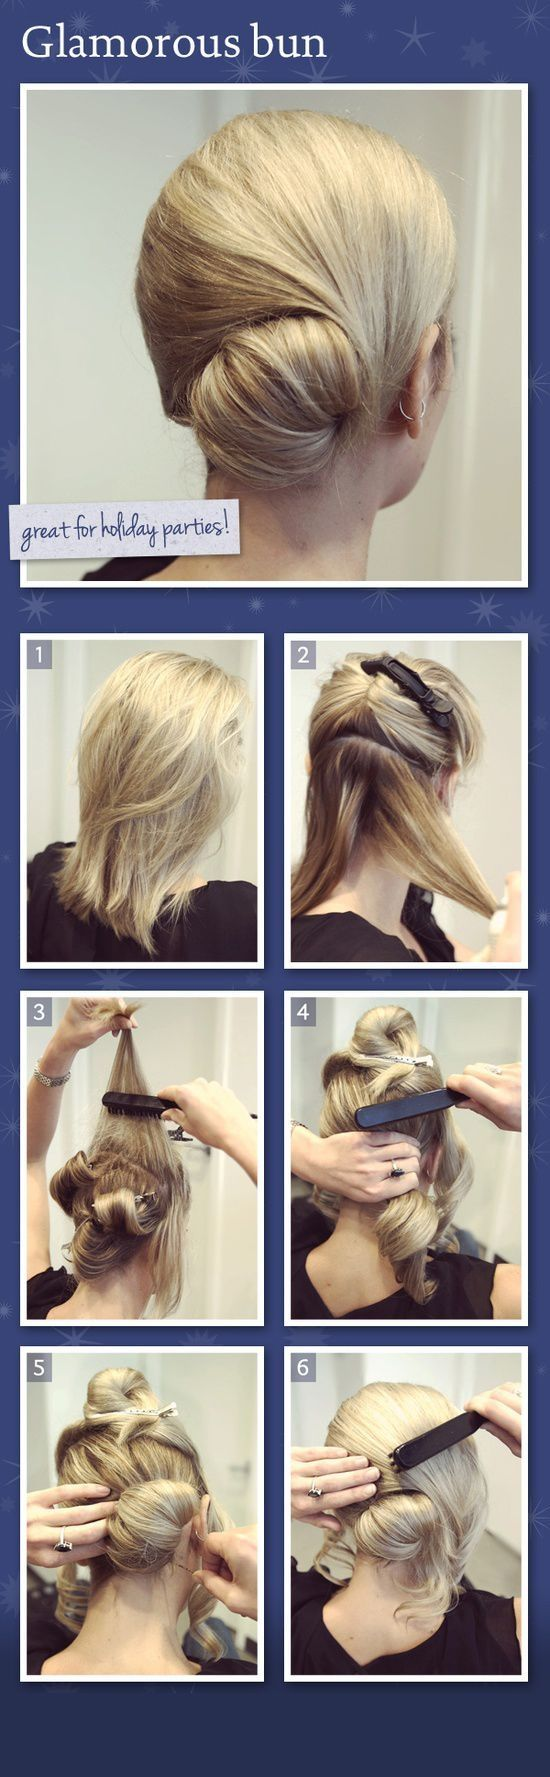 Beautiful side-swept bun - perfect for a summer wedding where you want your hair up and off your neck by lllllol